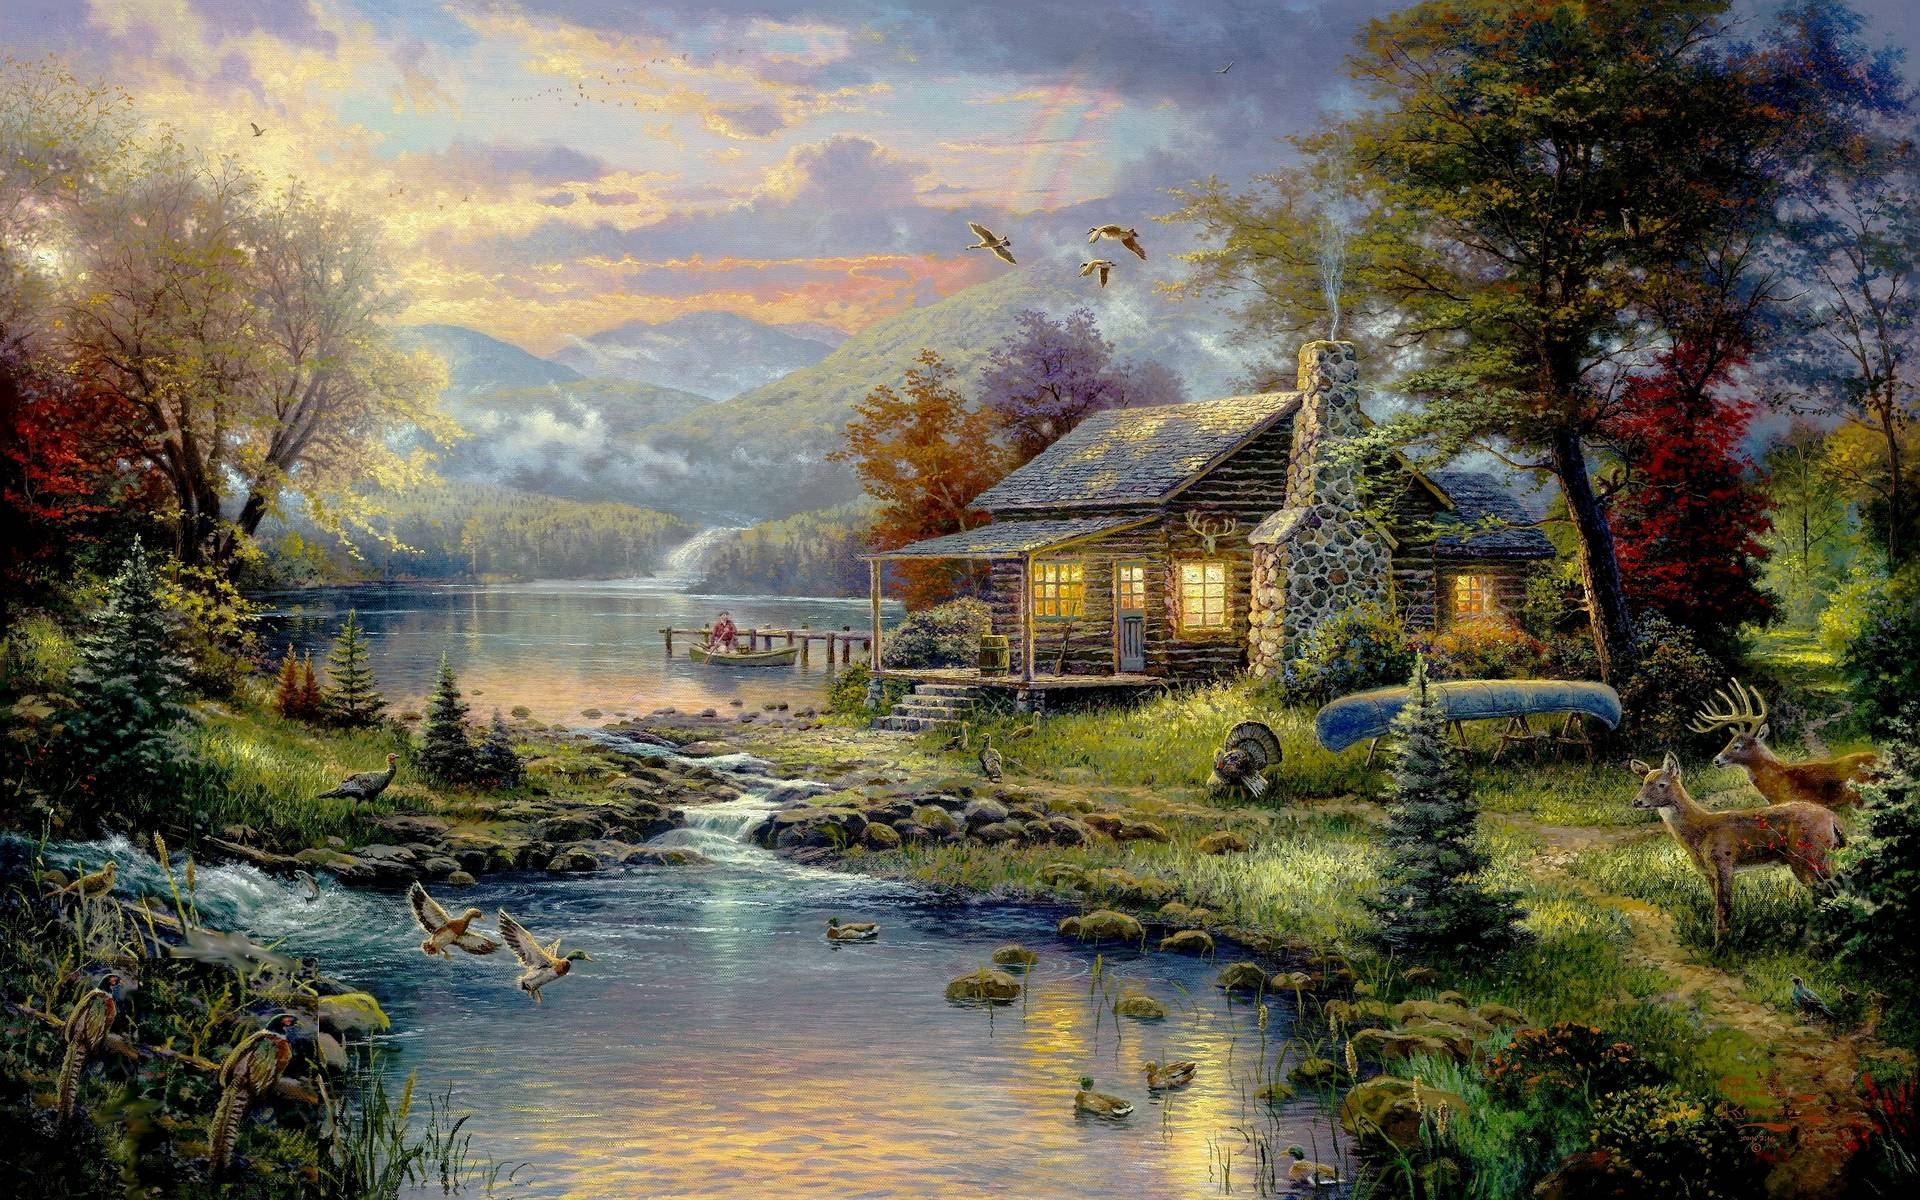 Thomas kinkade wallpapers wallpaper cave for House painting images